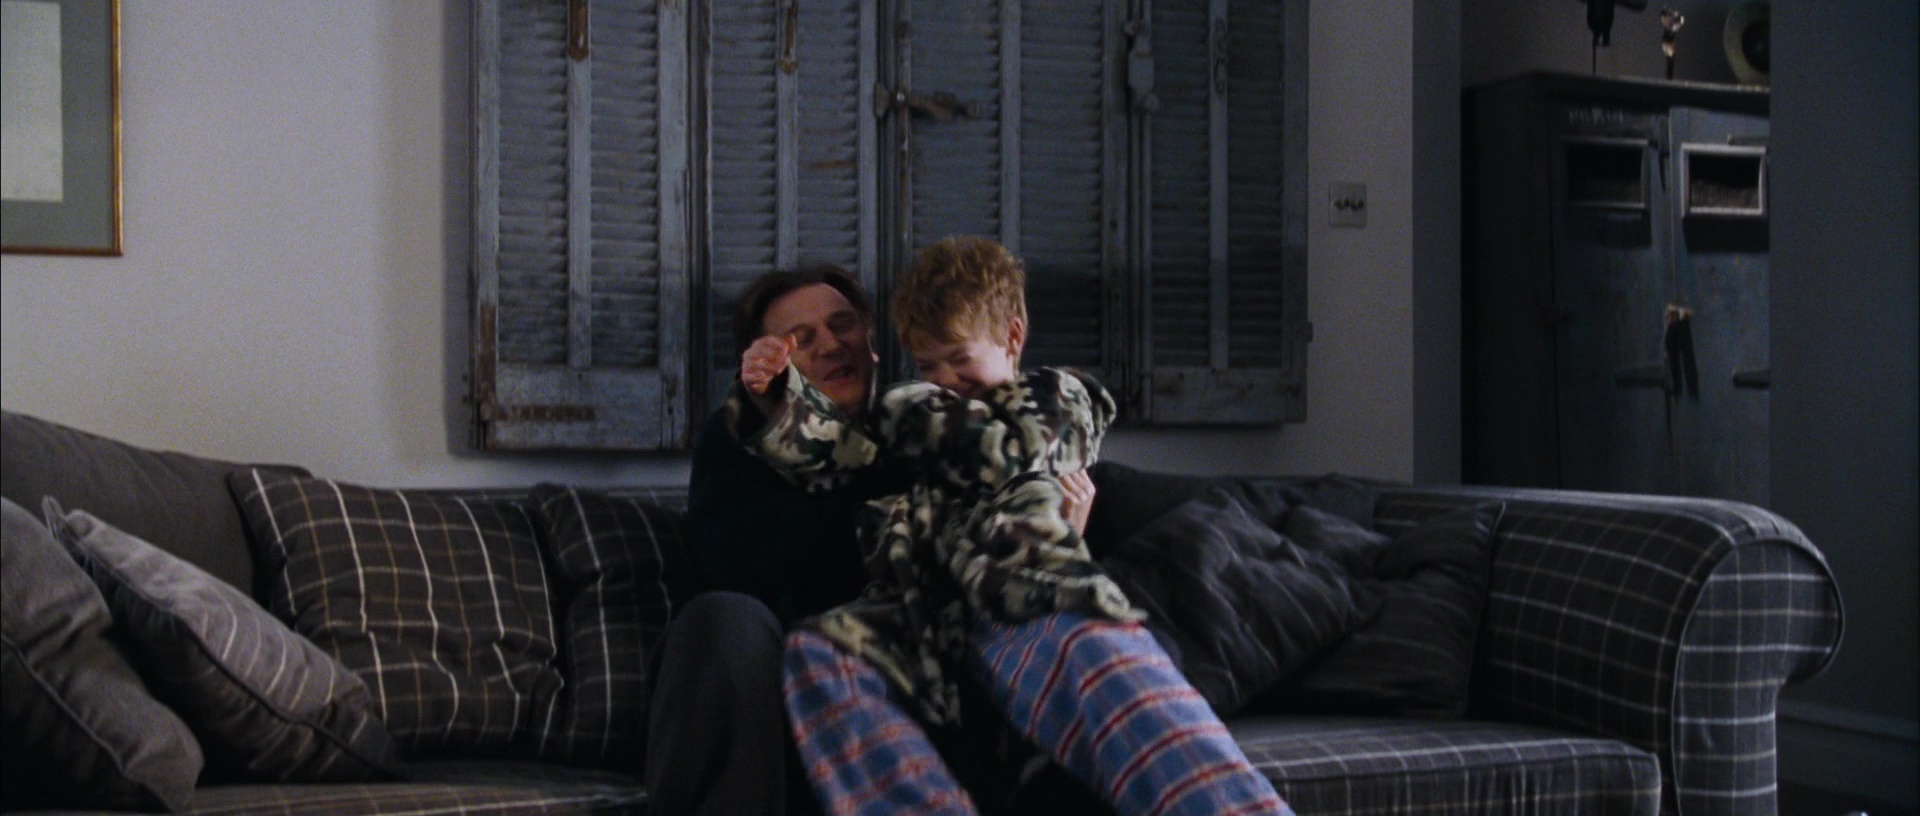 Love Actually film still 6